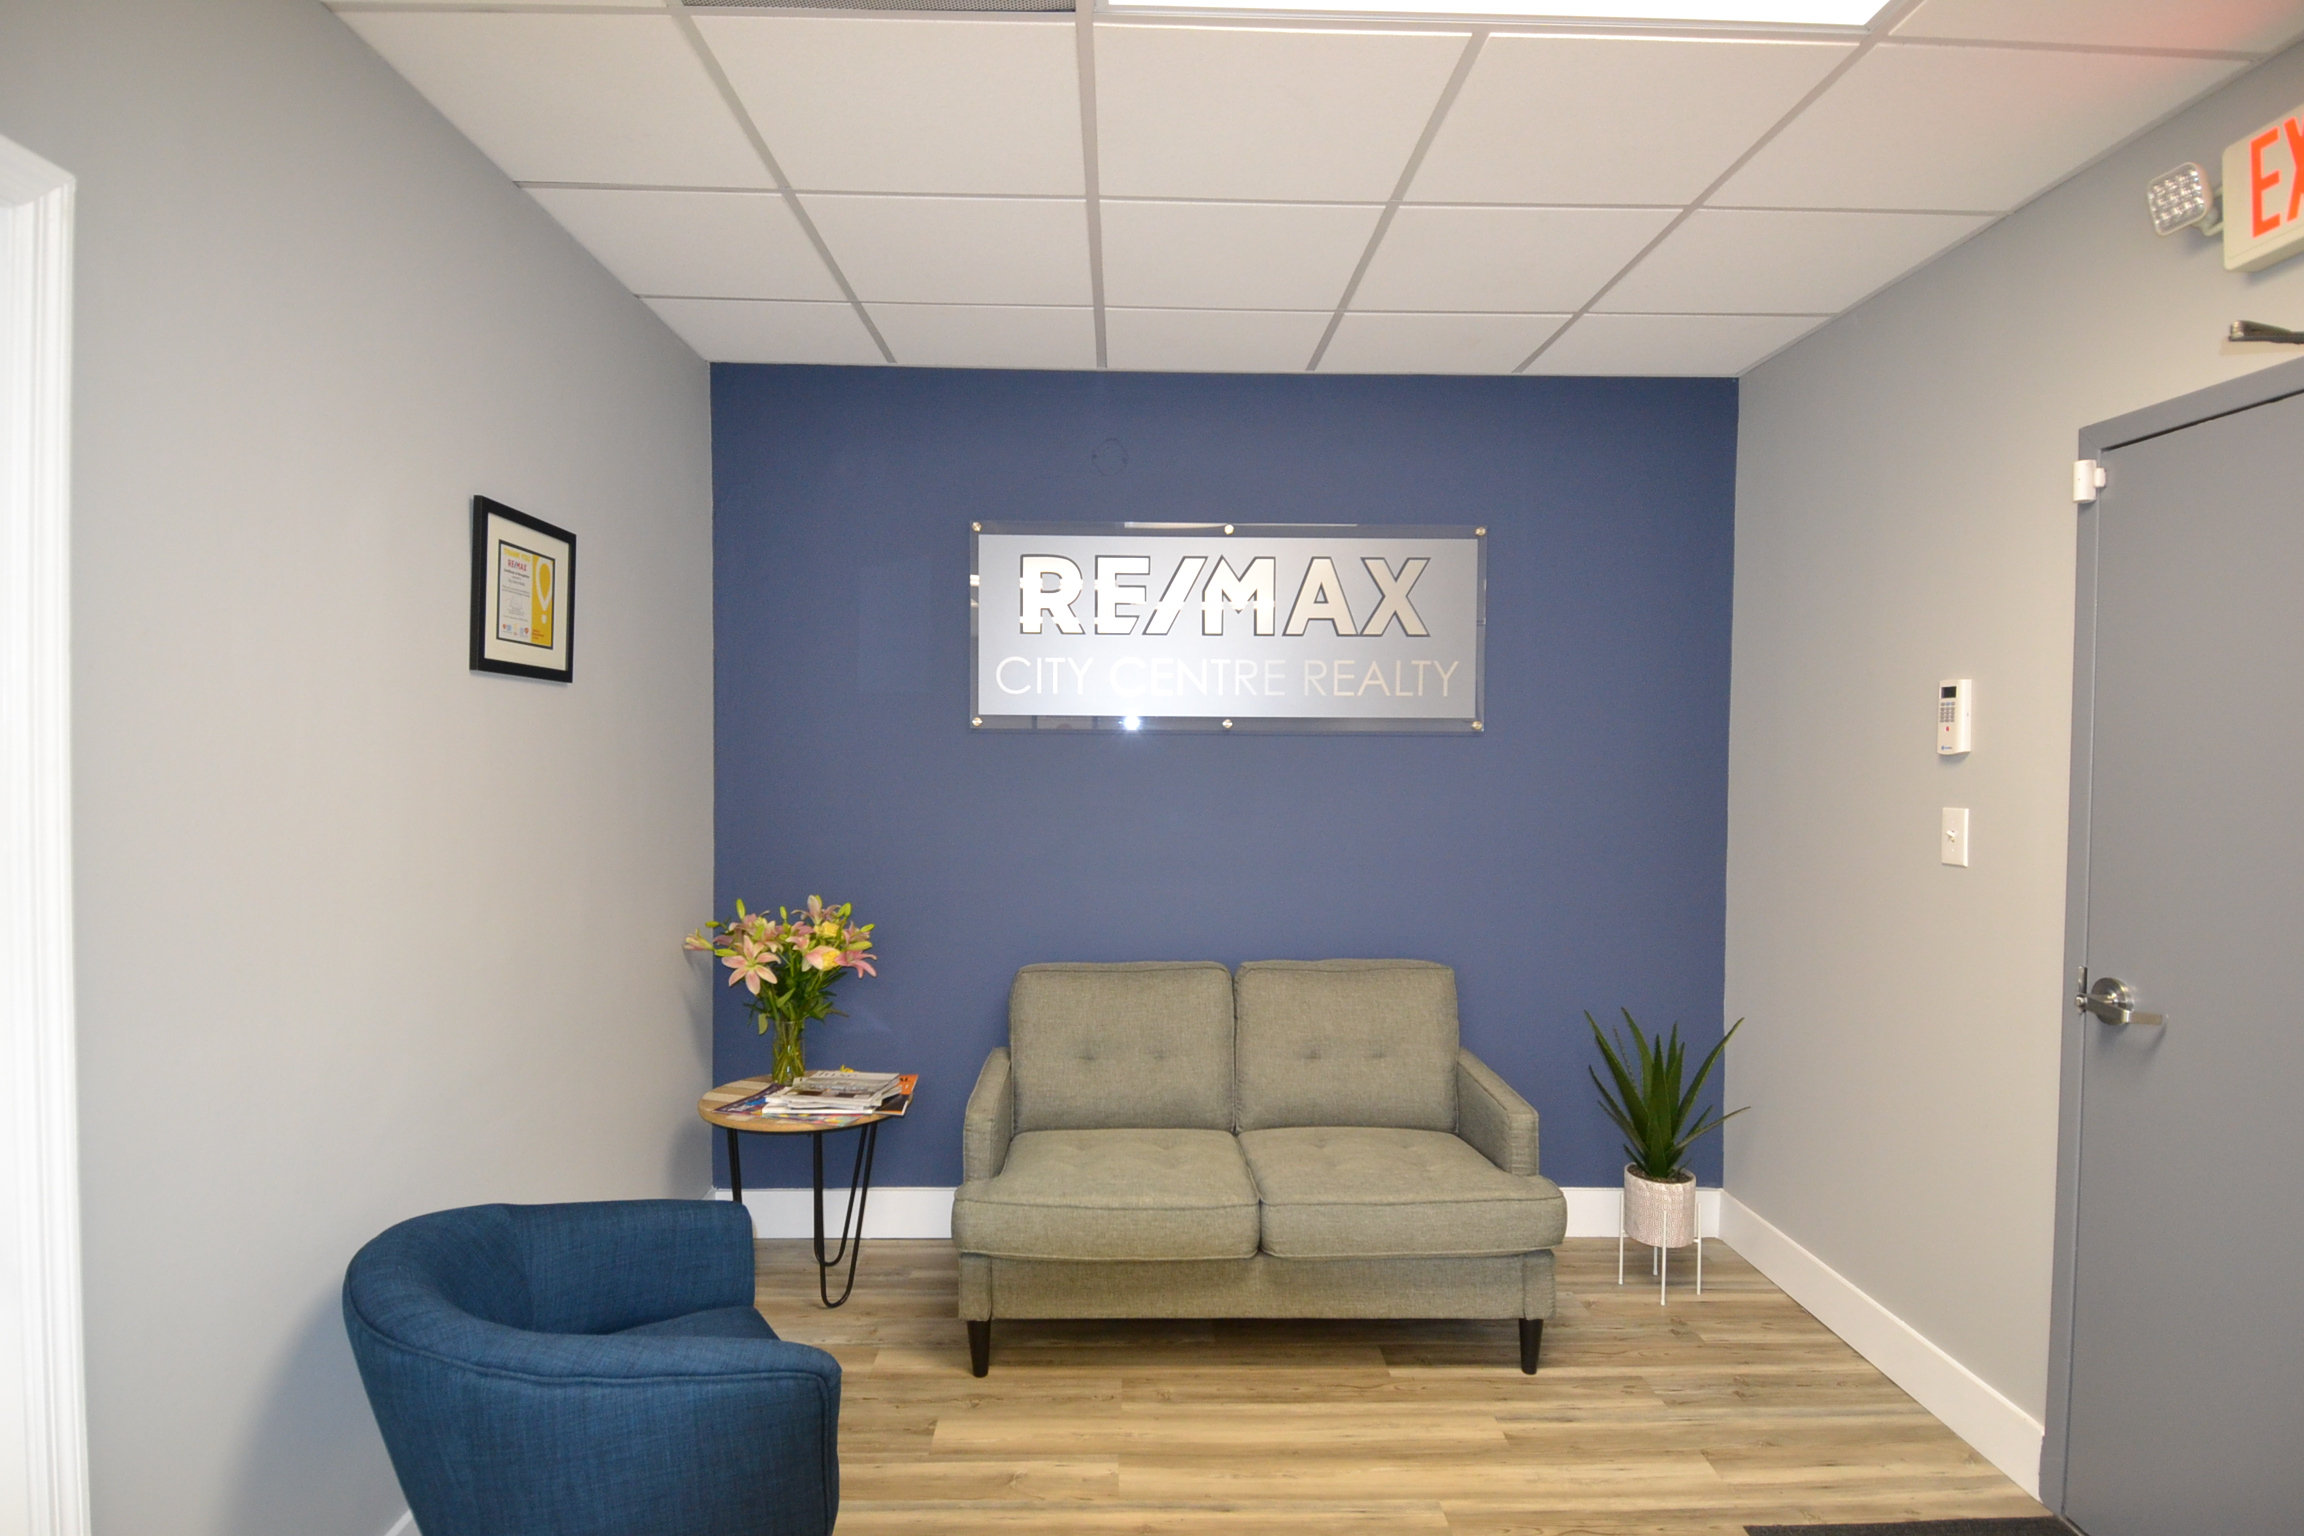 RE/MAX City Centre Realty